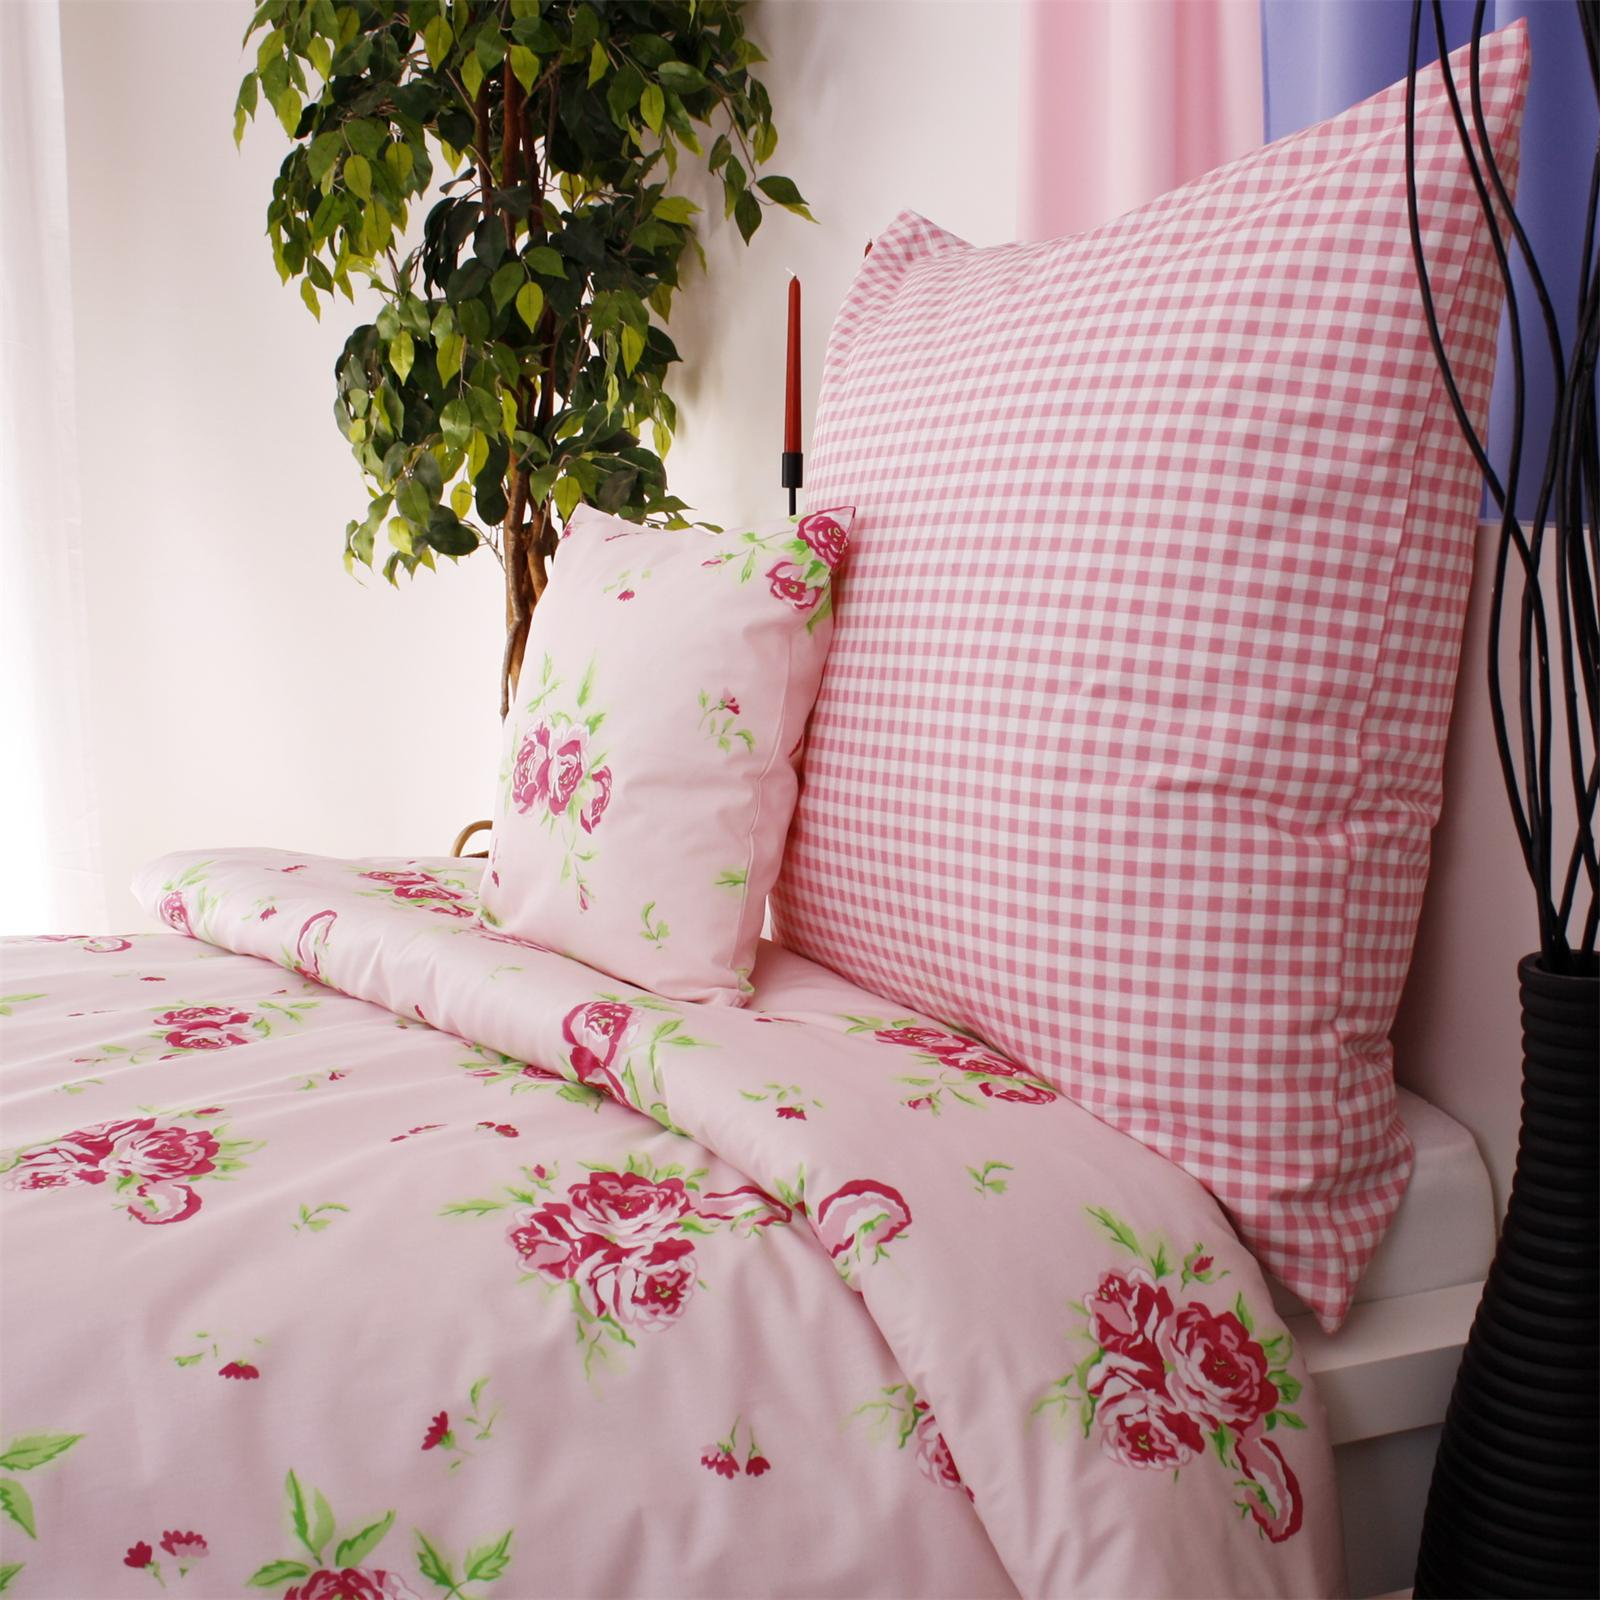 blumen rosen rosa mit karo bettw sche mit landhaus flair. Black Bedroom Furniture Sets. Home Design Ideas